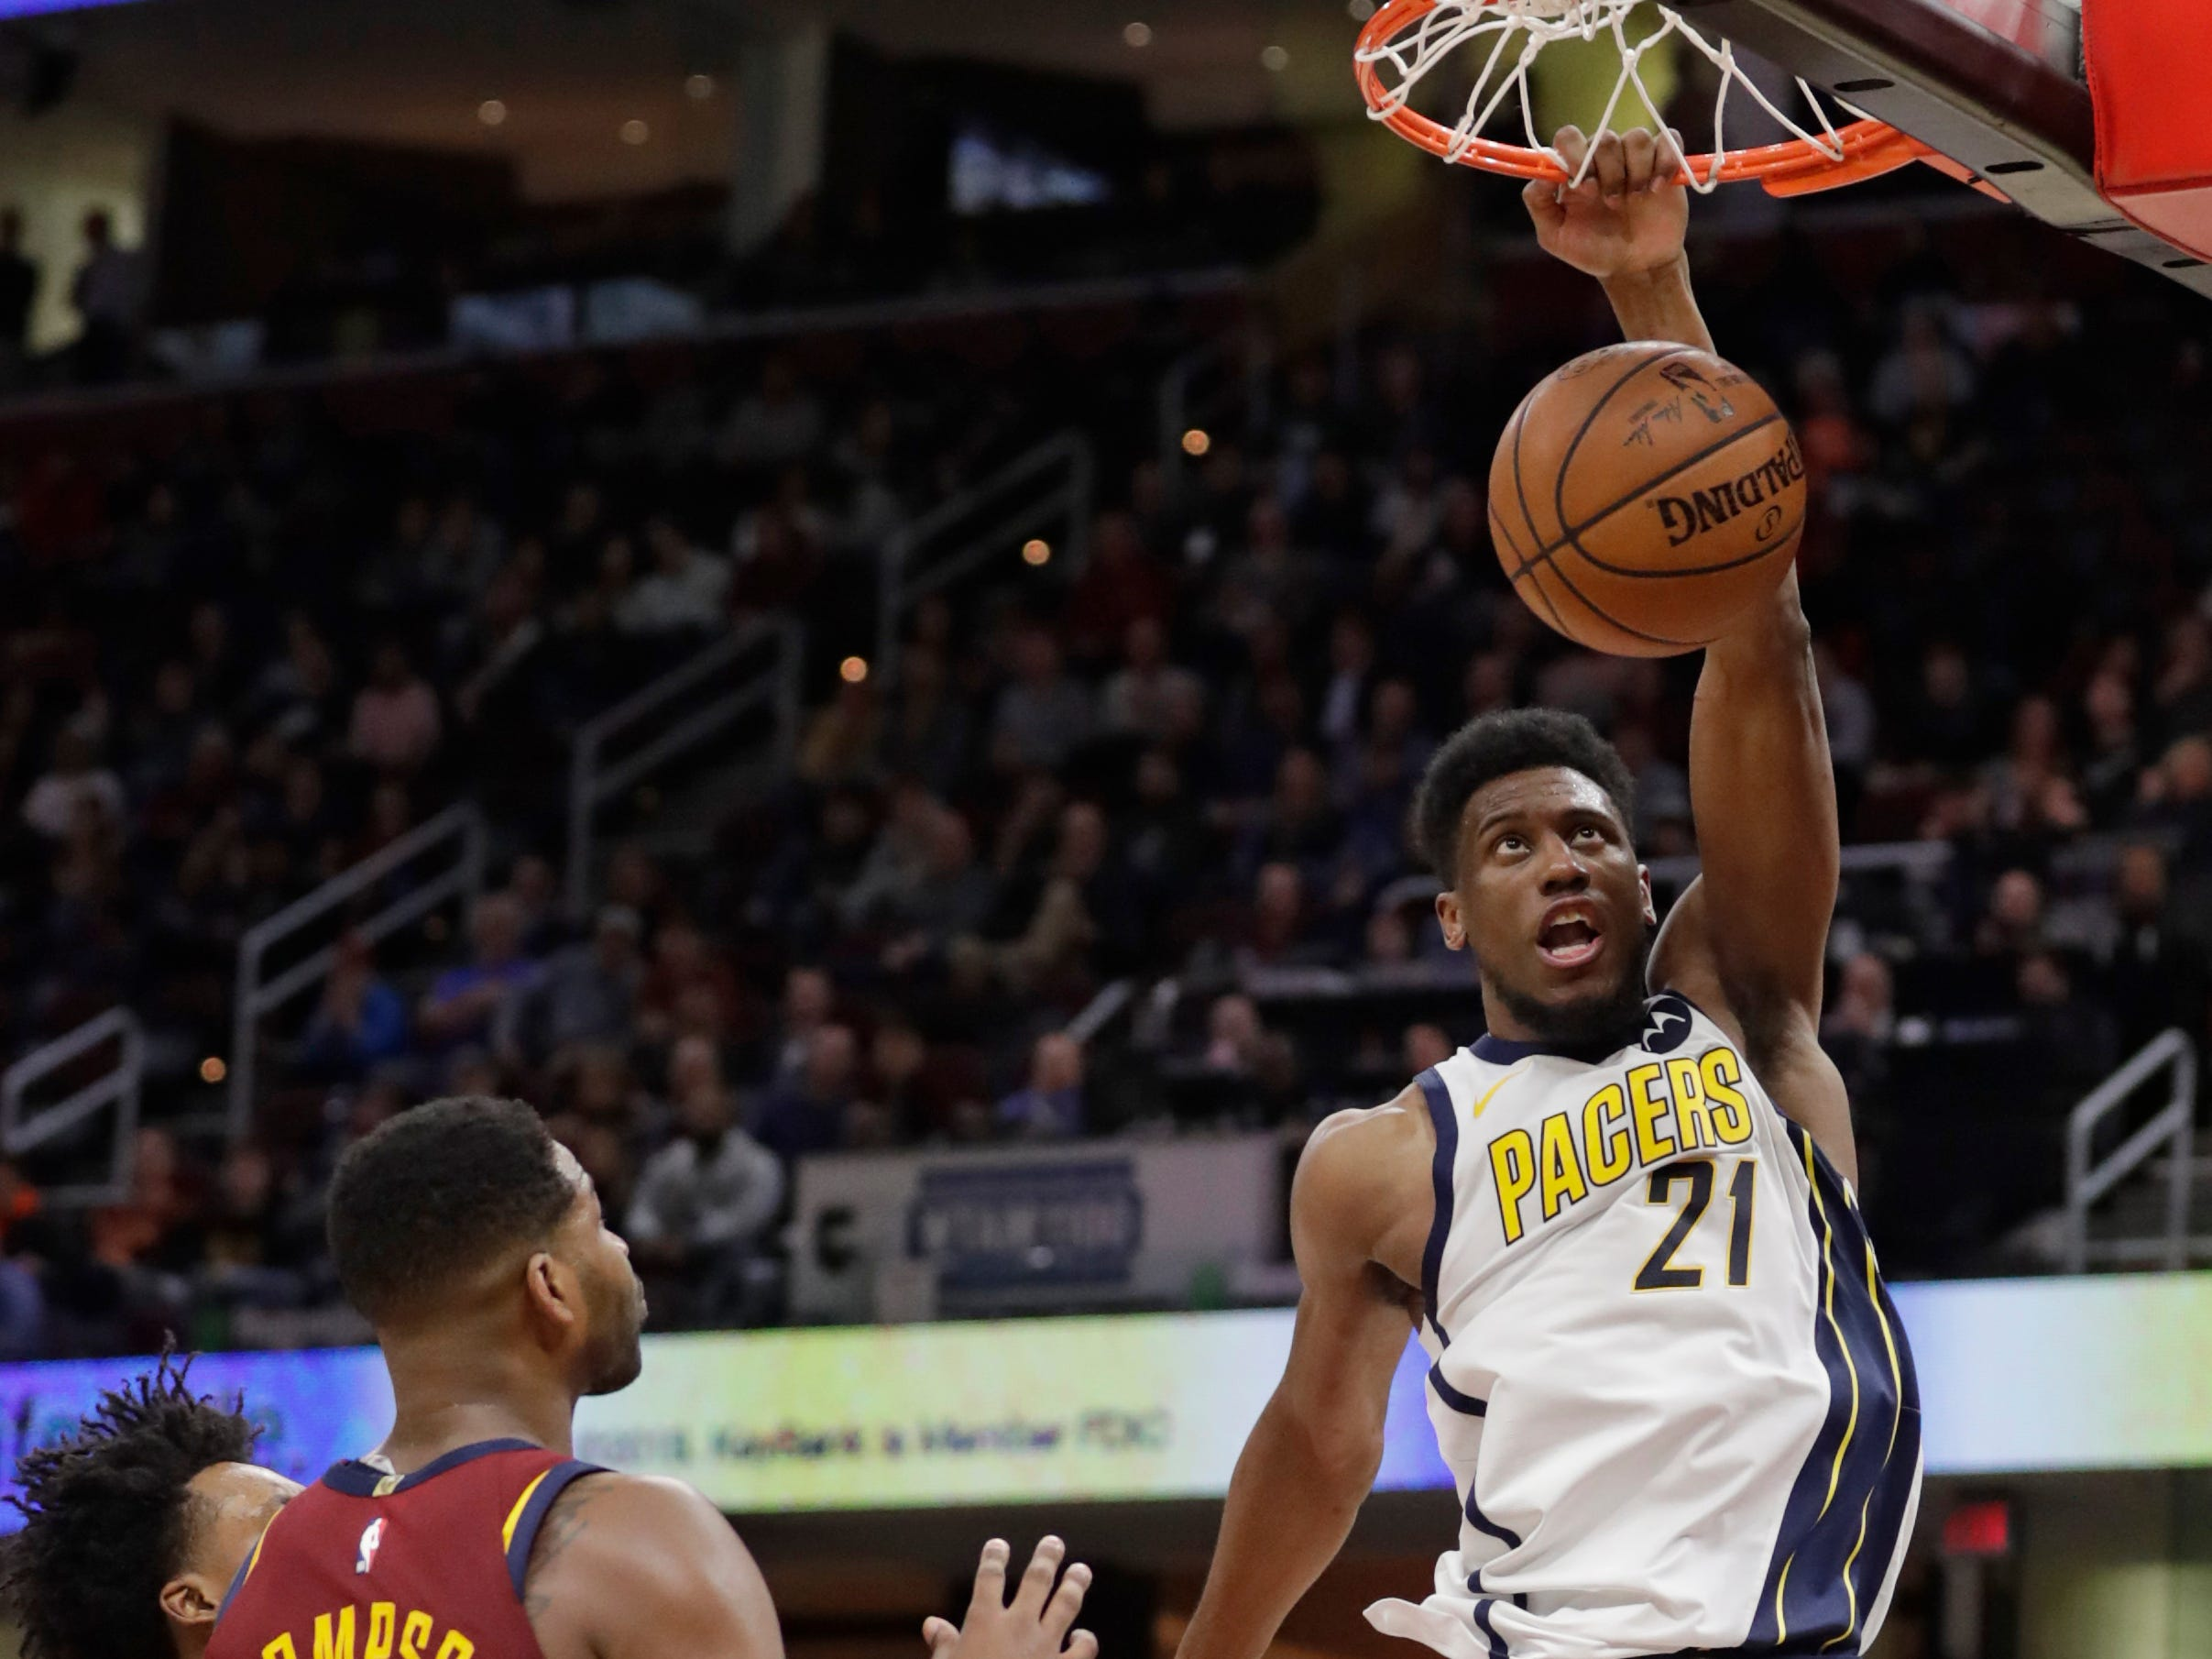 Indiana Pacers' Thaddeus Young dunks against the Cleveland Cavaliers during the first half of an NBA basketball game Tuesday, Jan. 8, 2019, in Cleveland.